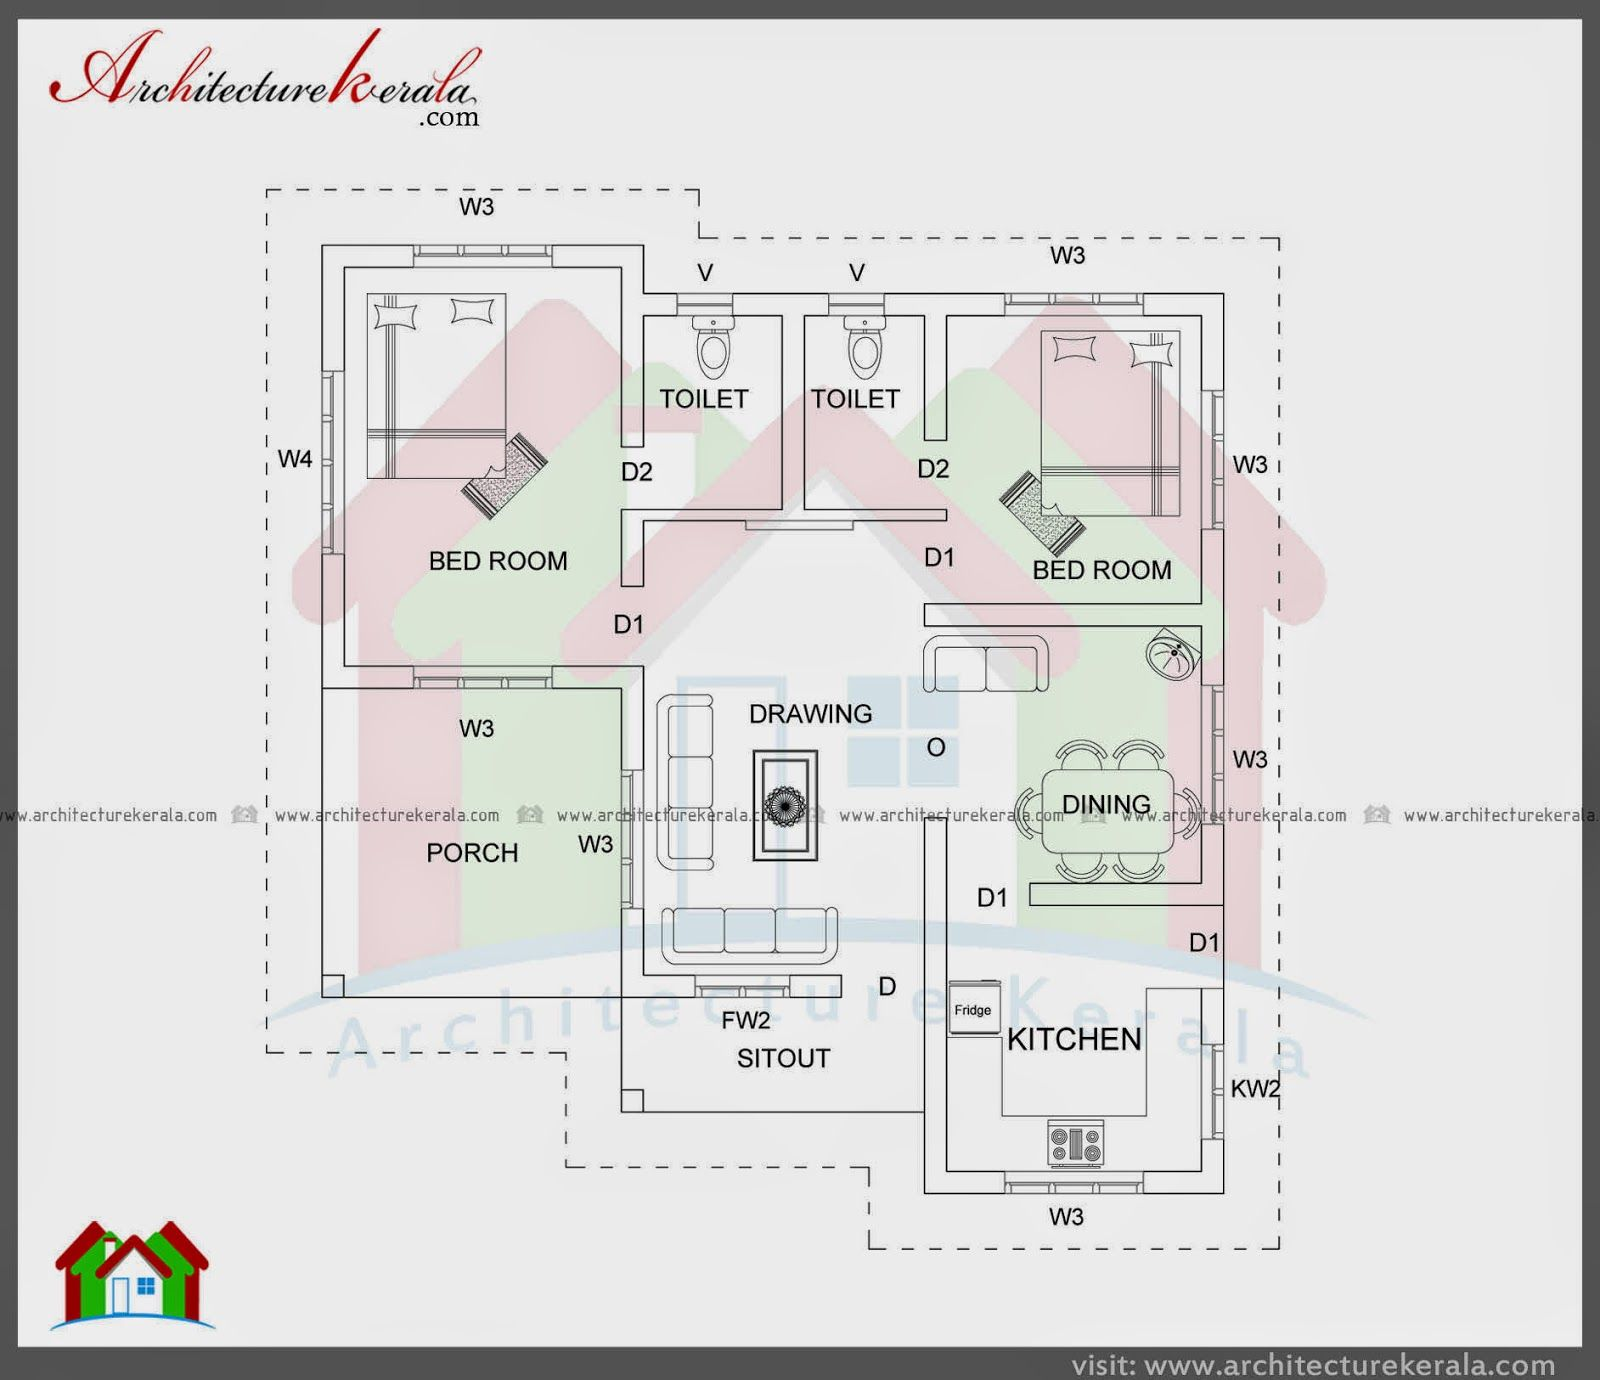 May 2014 House Plans 2 Bedroom House Plans Bedroom House Plans